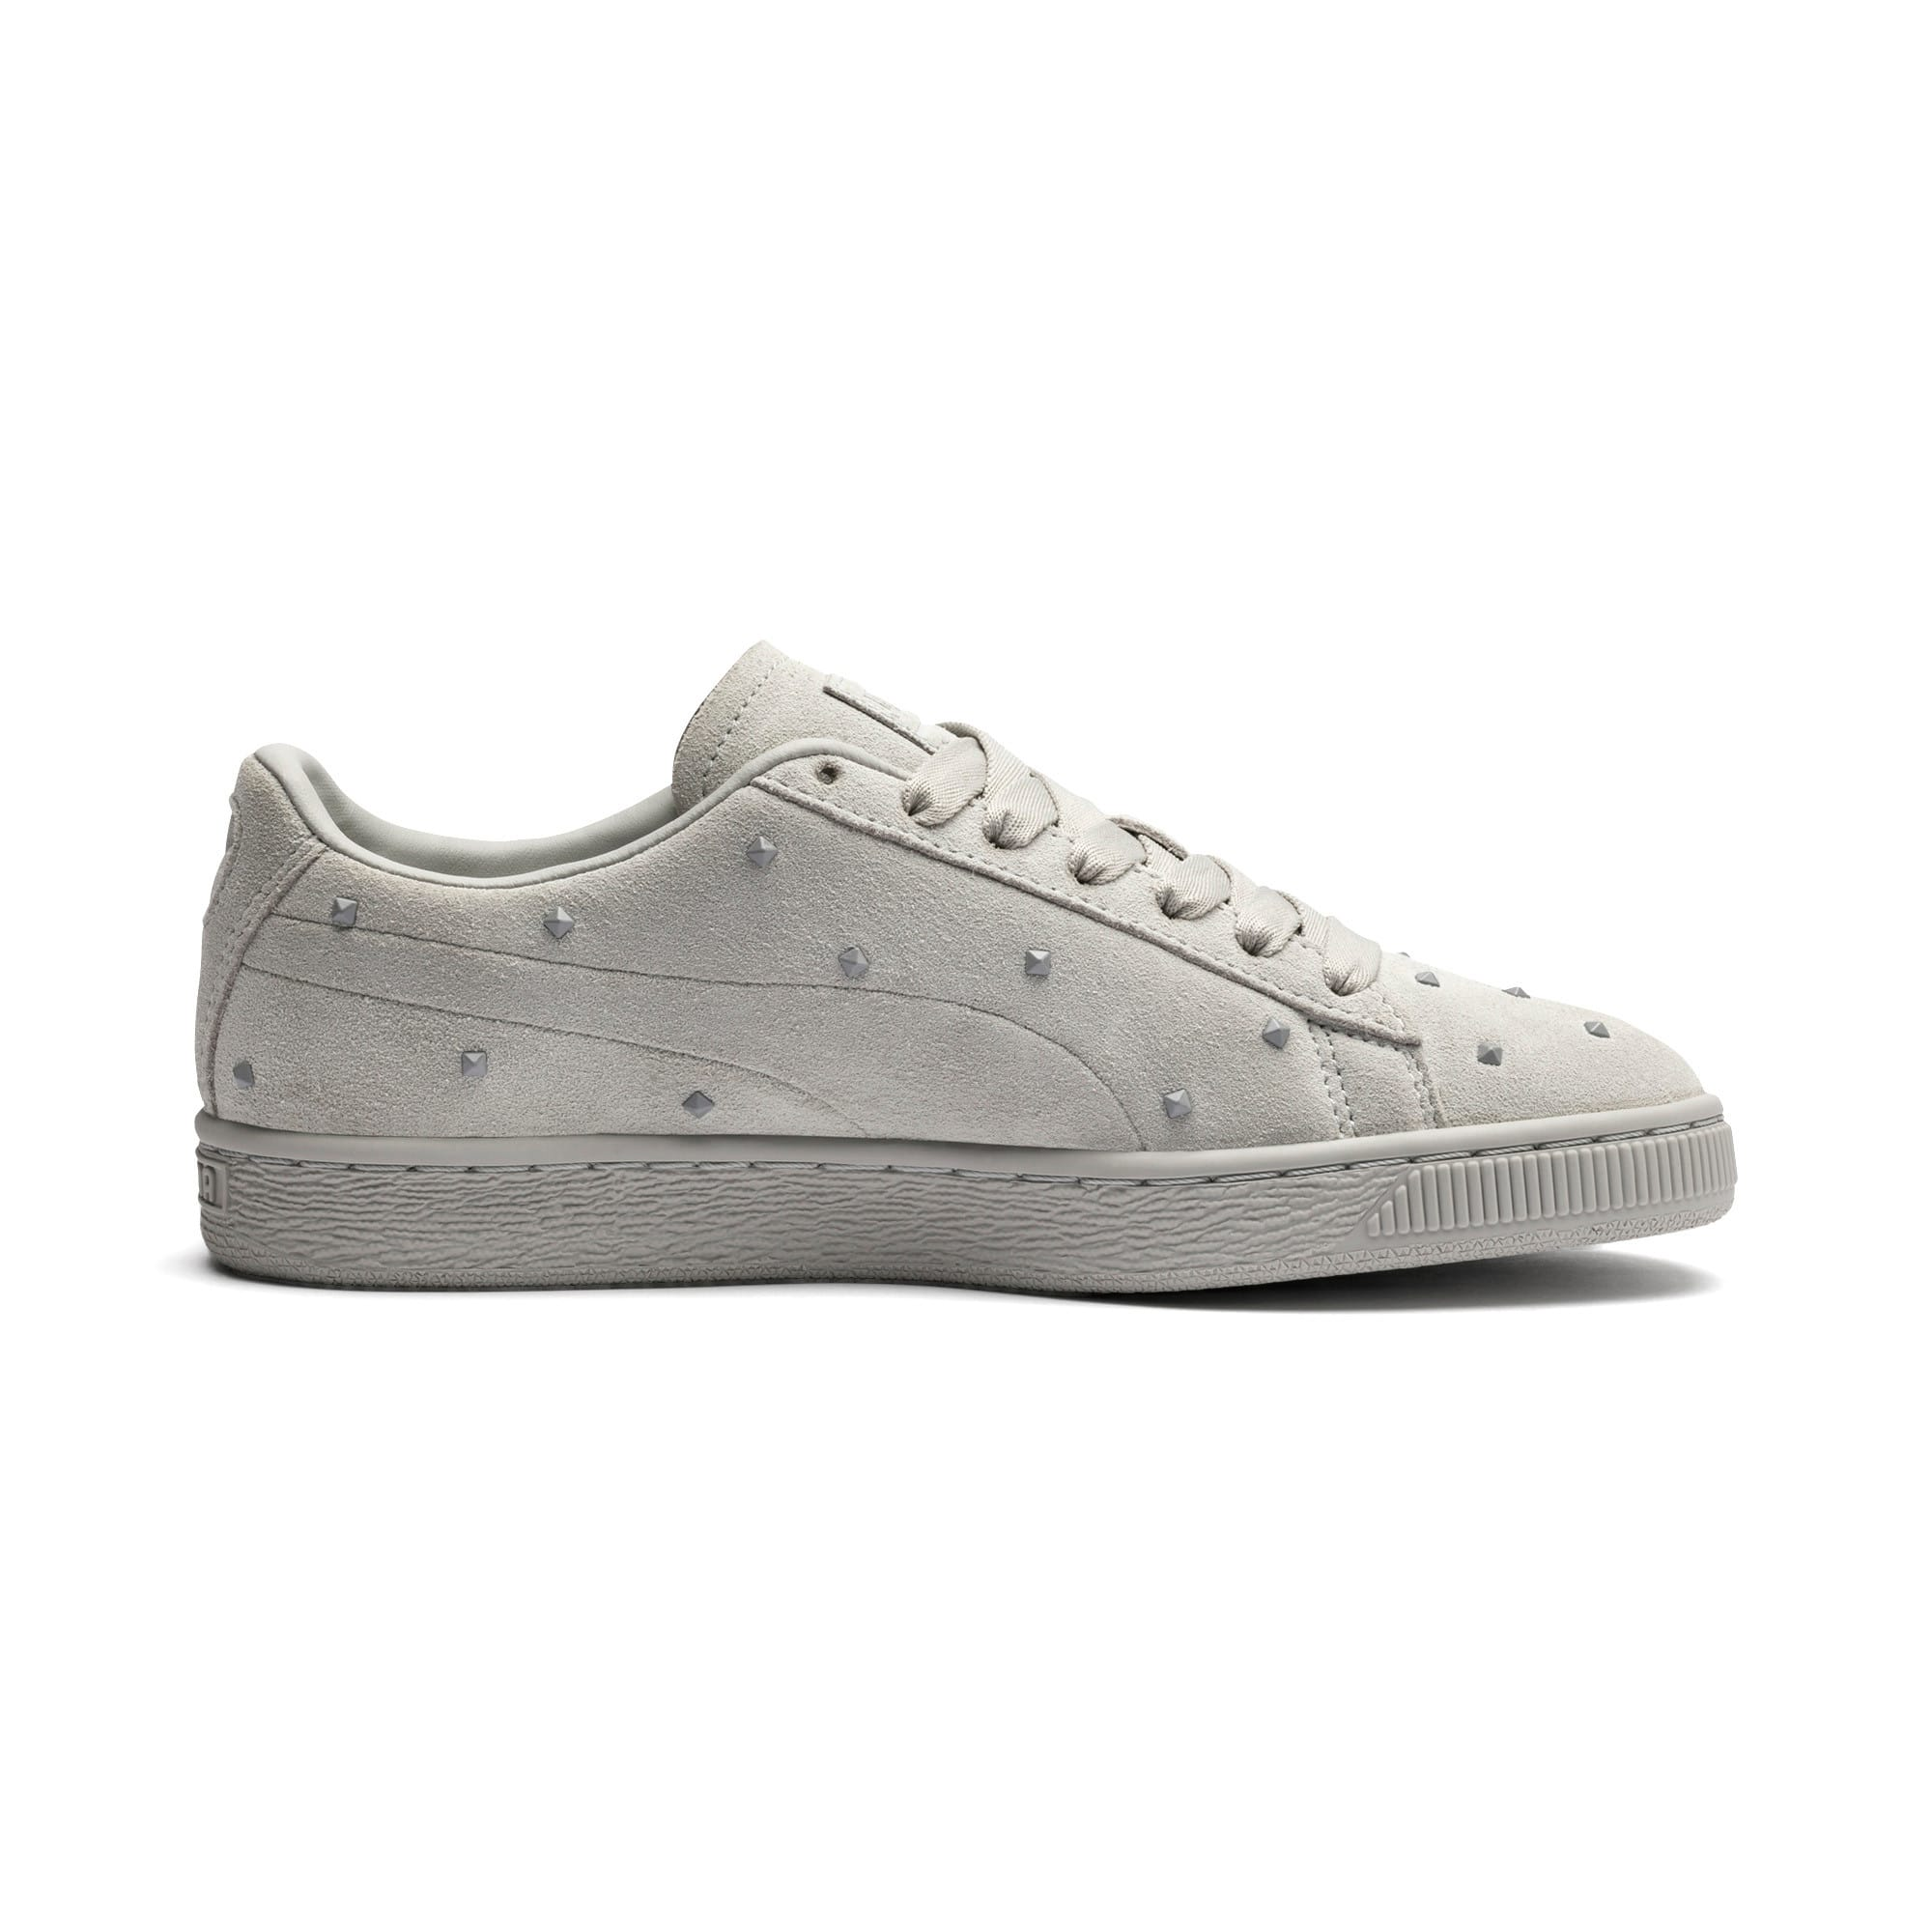 Thumbnail 6 of Suede Studs Women's Trainers, Gray Violet-Puma White, medium